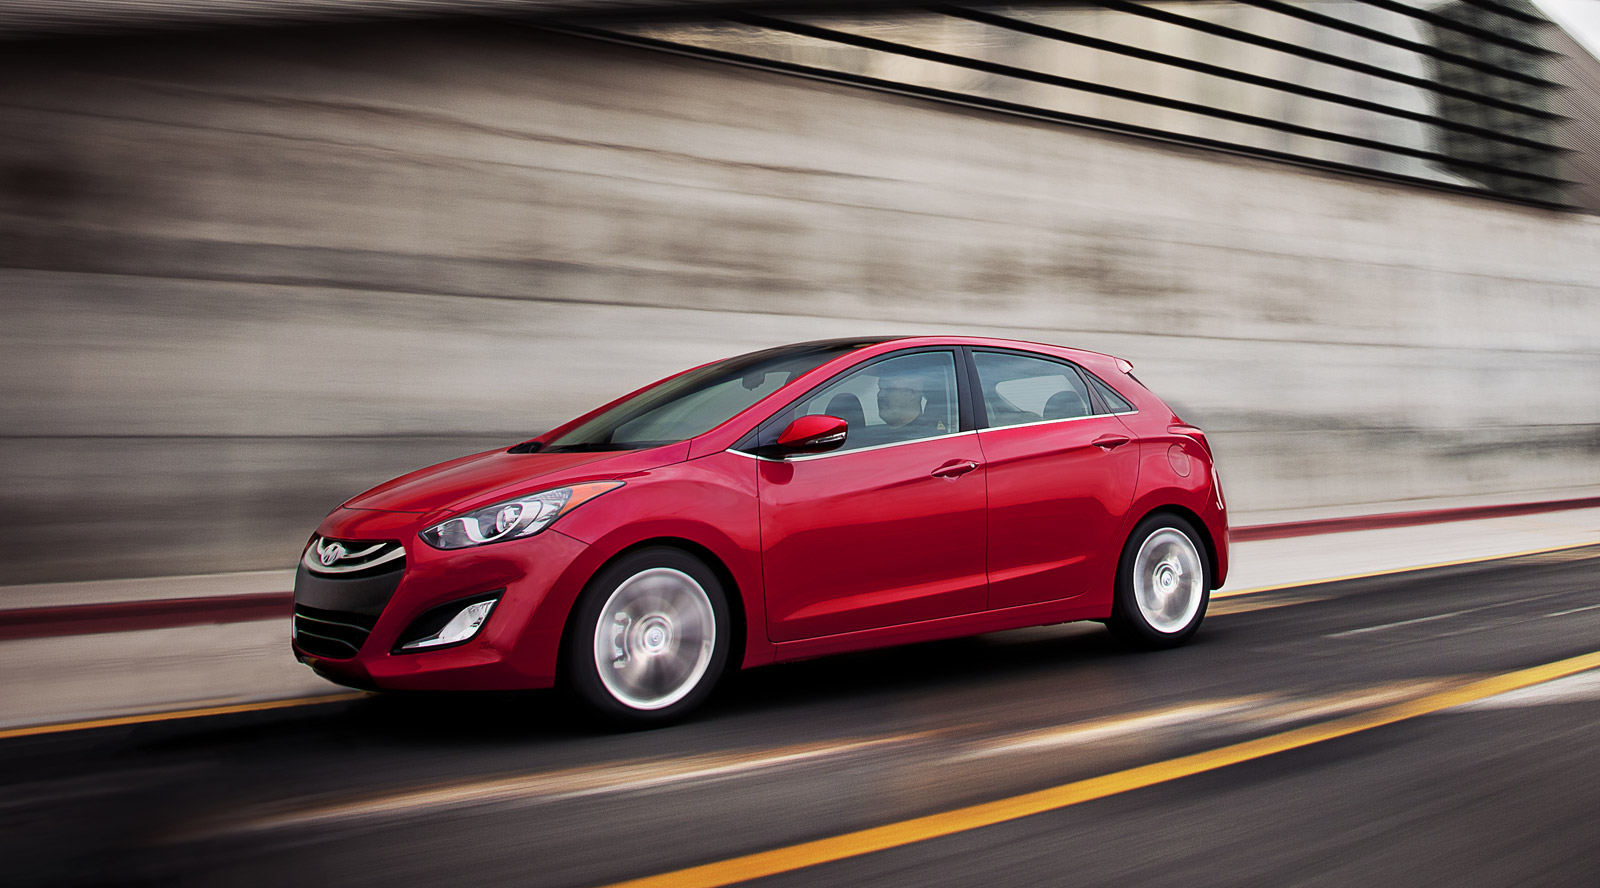 2013 hyundai elantra gt review ratings specs prices. Black Bedroom Furniture Sets. Home Design Ideas